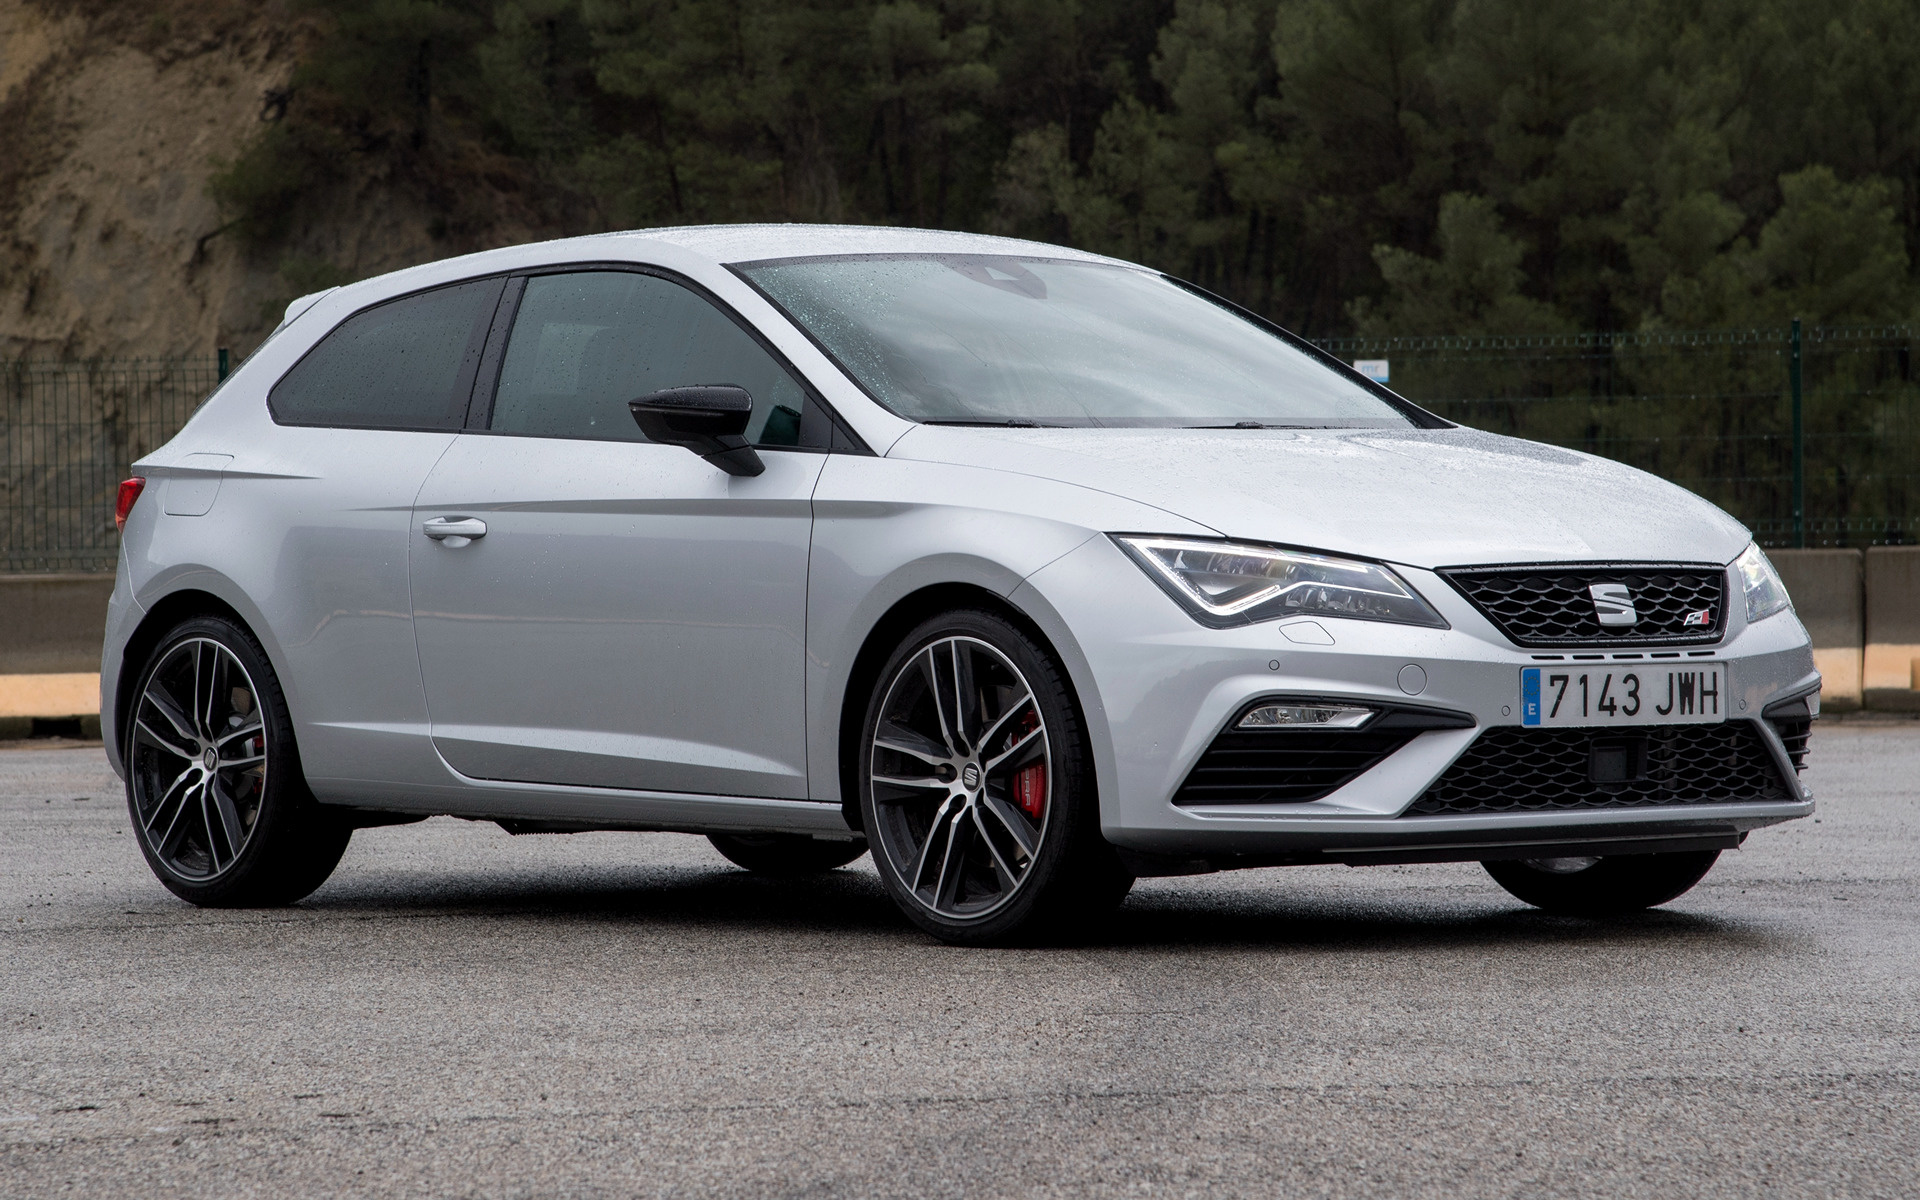 2017 Seat Leon Sc Cupra 300 Wallpapers And Hd Images